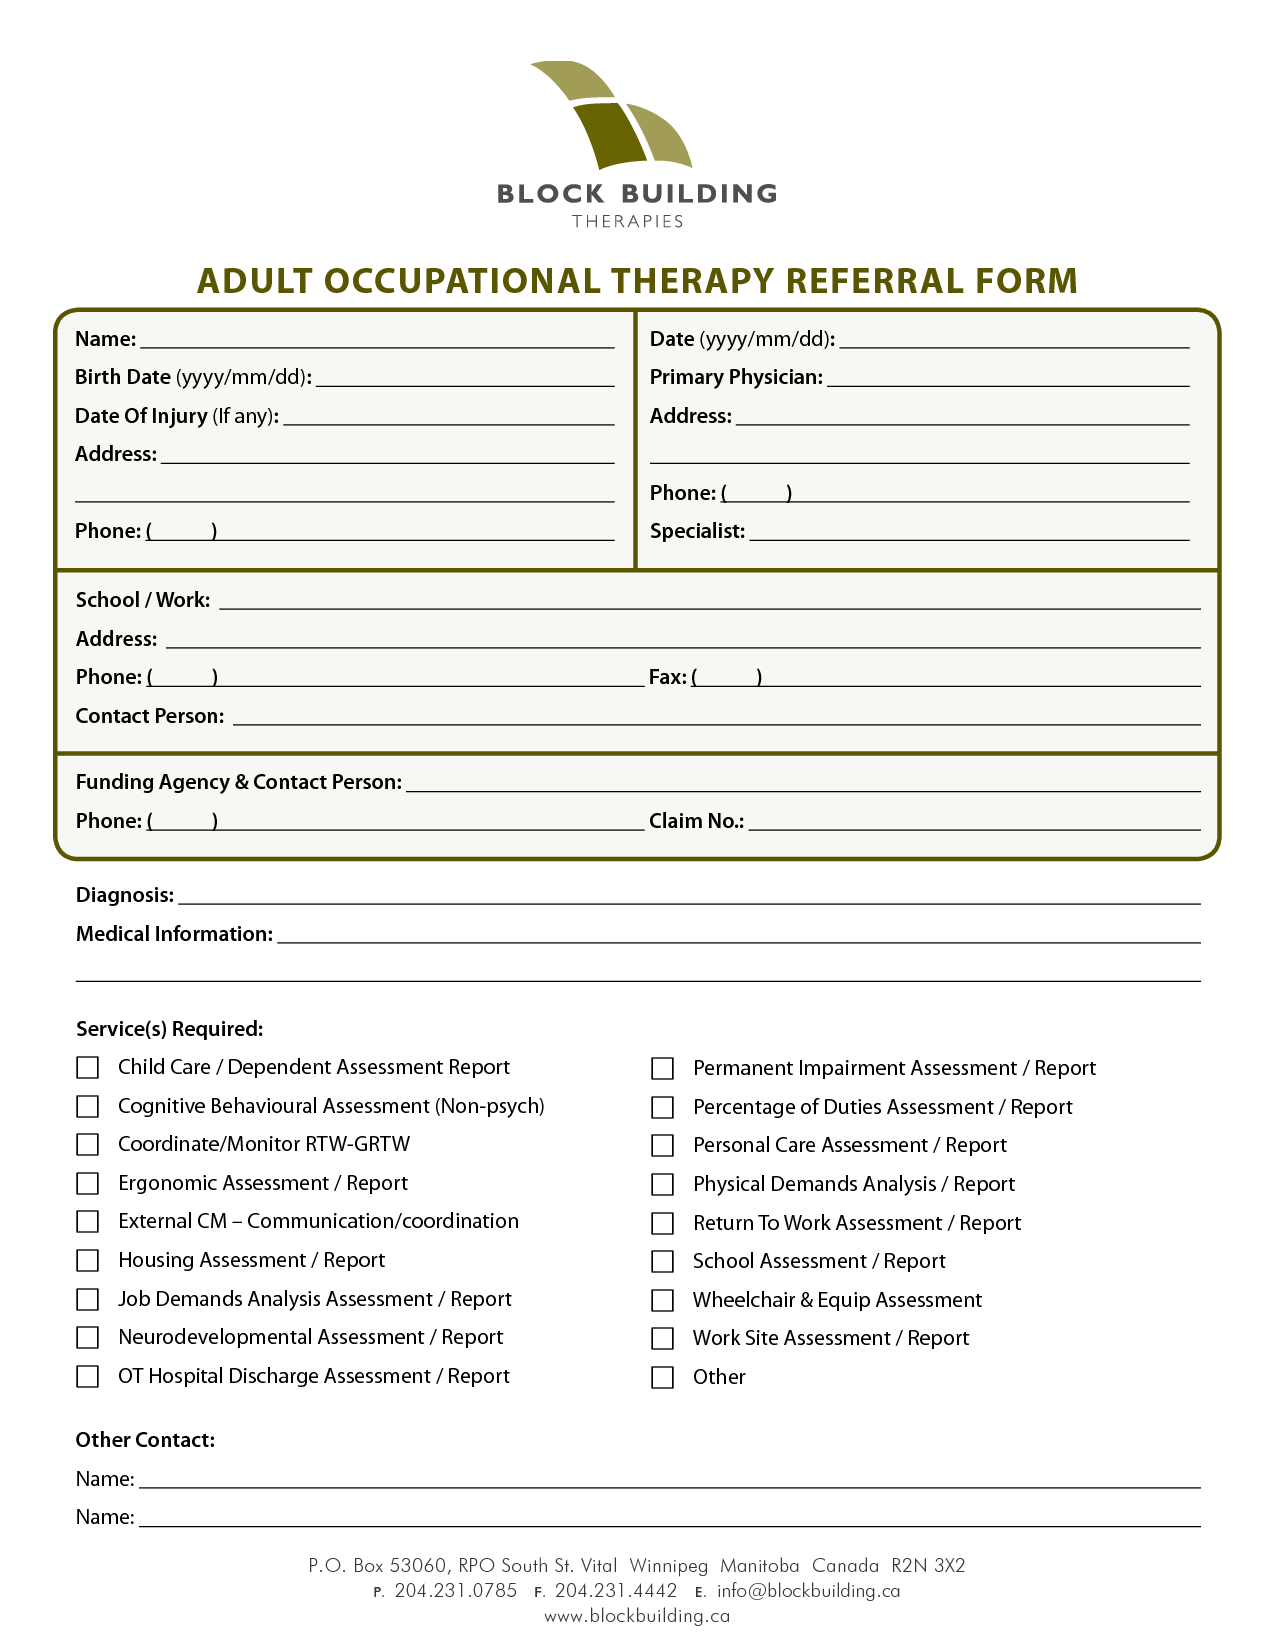 Tenncare Occupational Therapy Templates  Adult Occupational